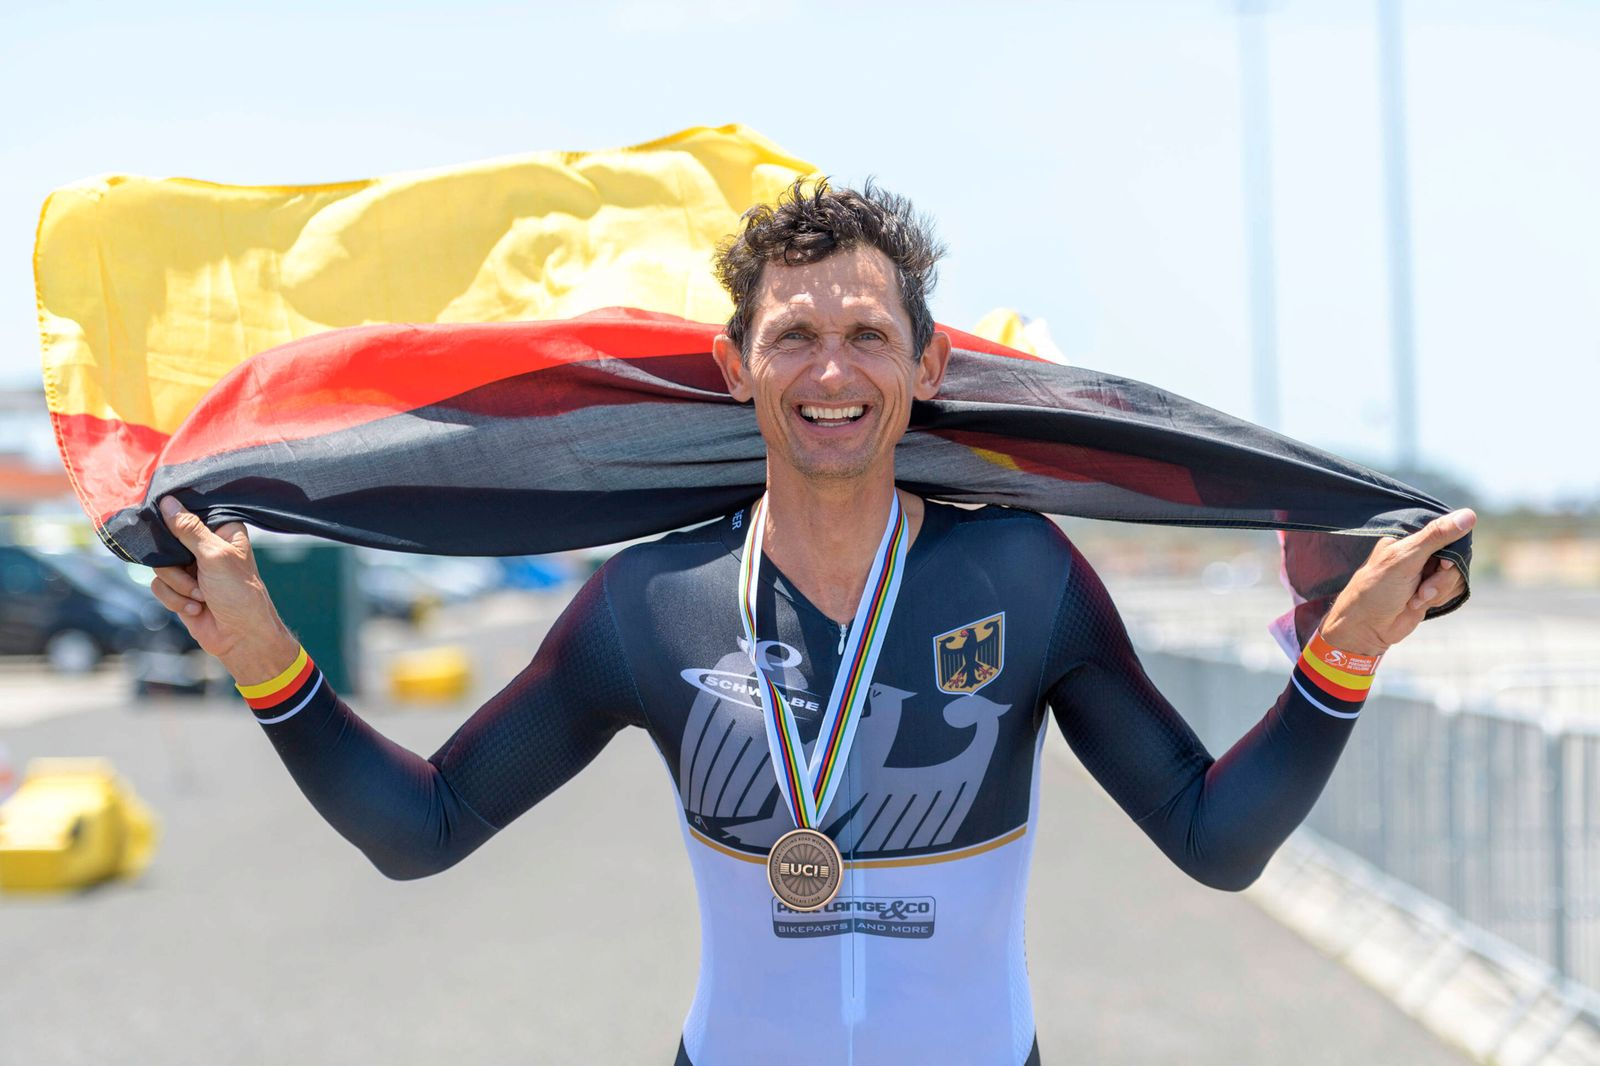 UCI Paracycling Road World Championships 2021; Sintra/Portugal 10.06.2021 SINTRA, PORTUGAL - JUNE 10: TEUBER Michael (GE